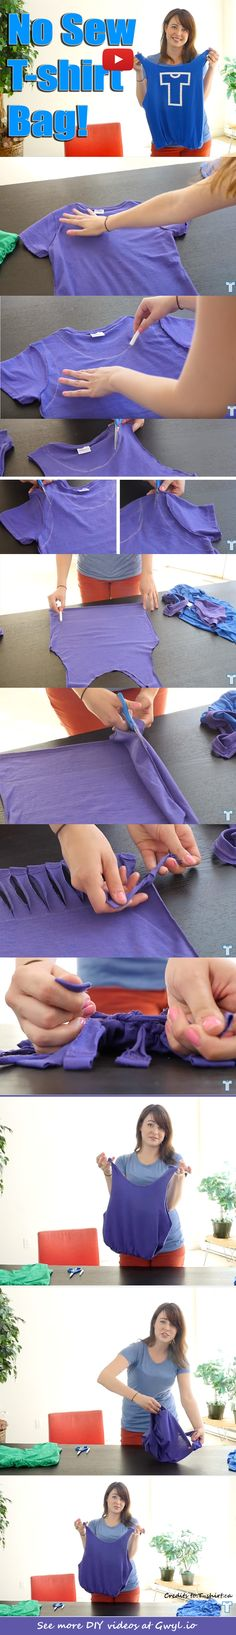 | Make A No Sew T-Shirt Tote Bag In 10 Minutes | http://gwyl.io/make-a-no-sew-t-shirt-tote-bag-in-10-minutes/